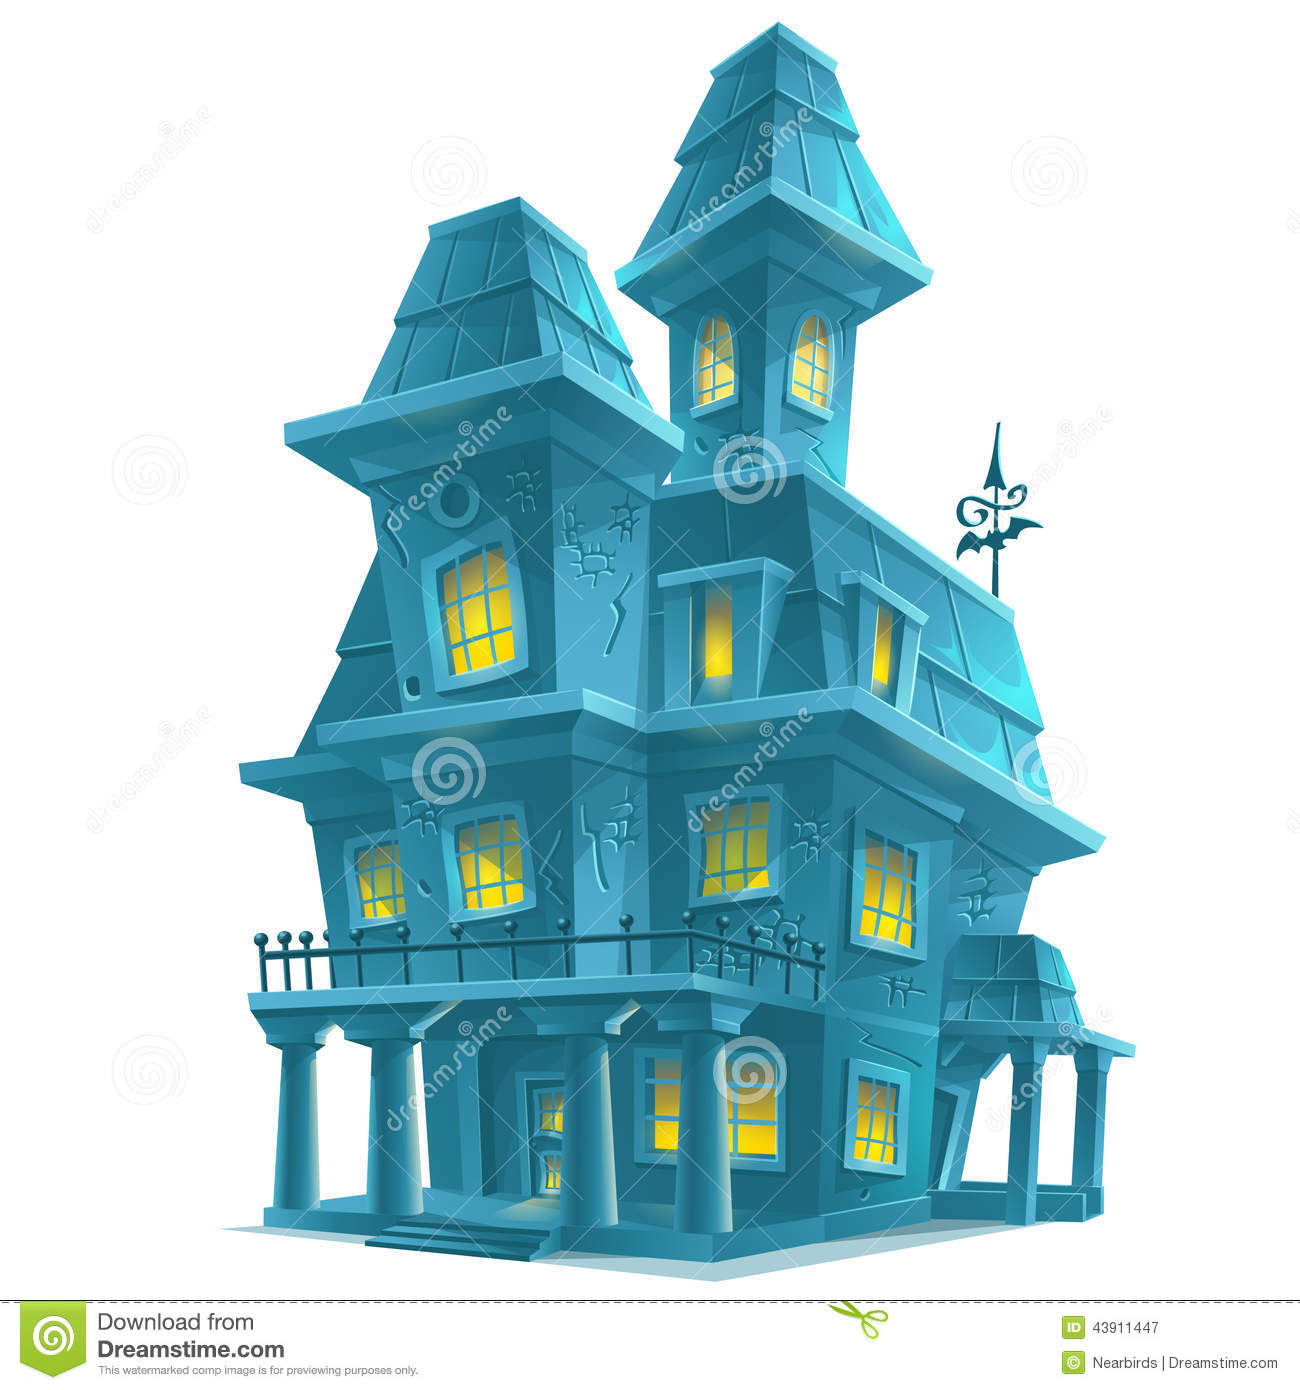 Halloween House Decorations: Haunted House In Halloween On White Background Stock